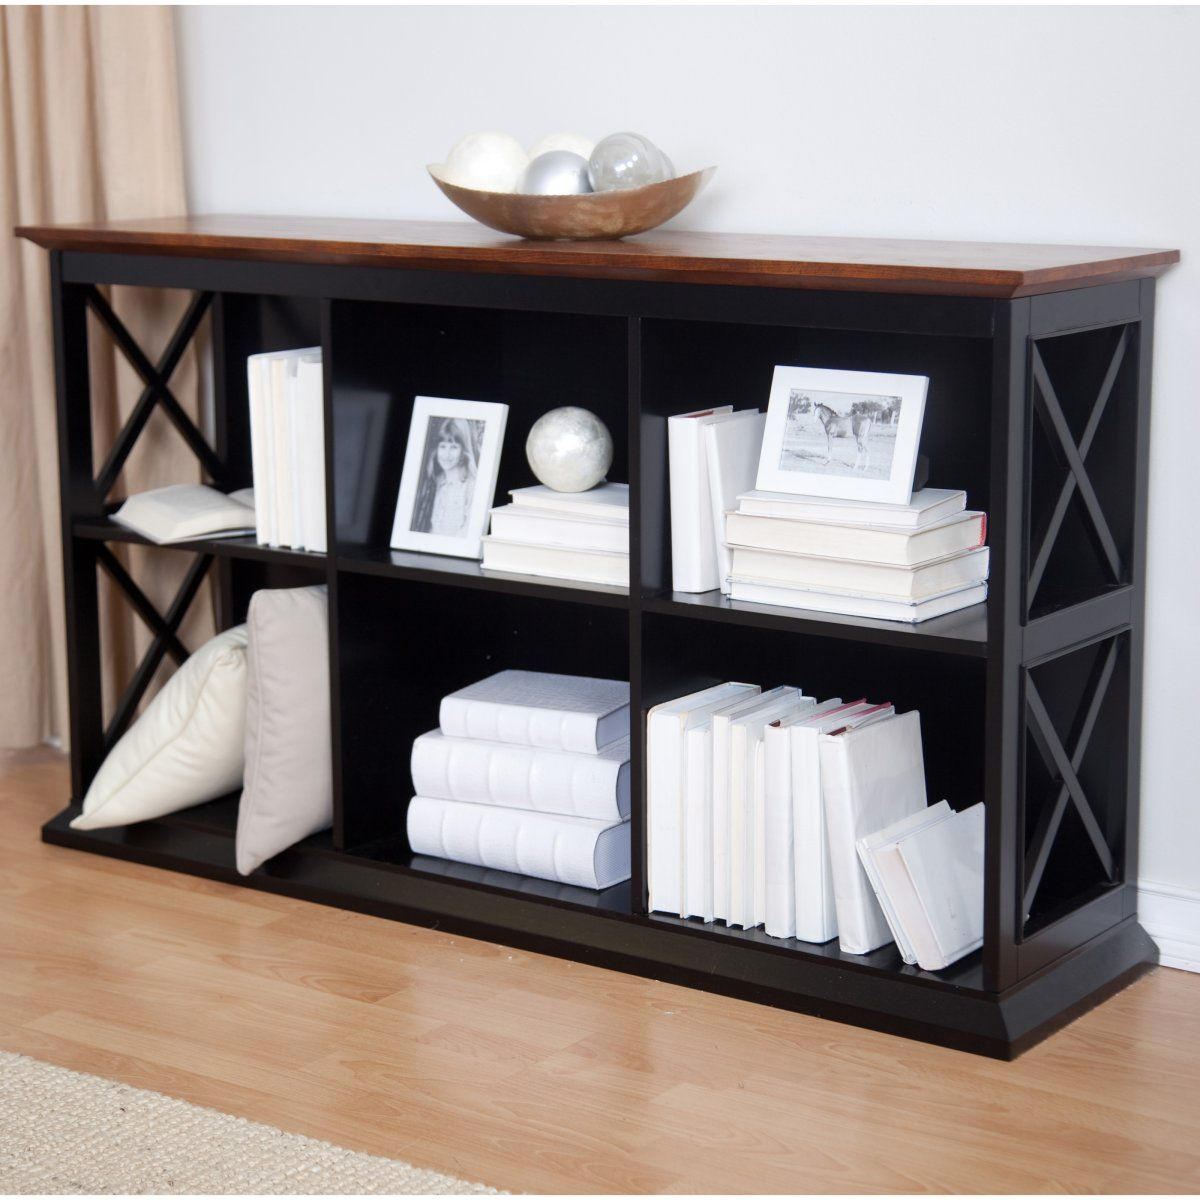 The Hampton Console Table Stackable Bookcase Black Oak Bookcases At Book Cases Galore